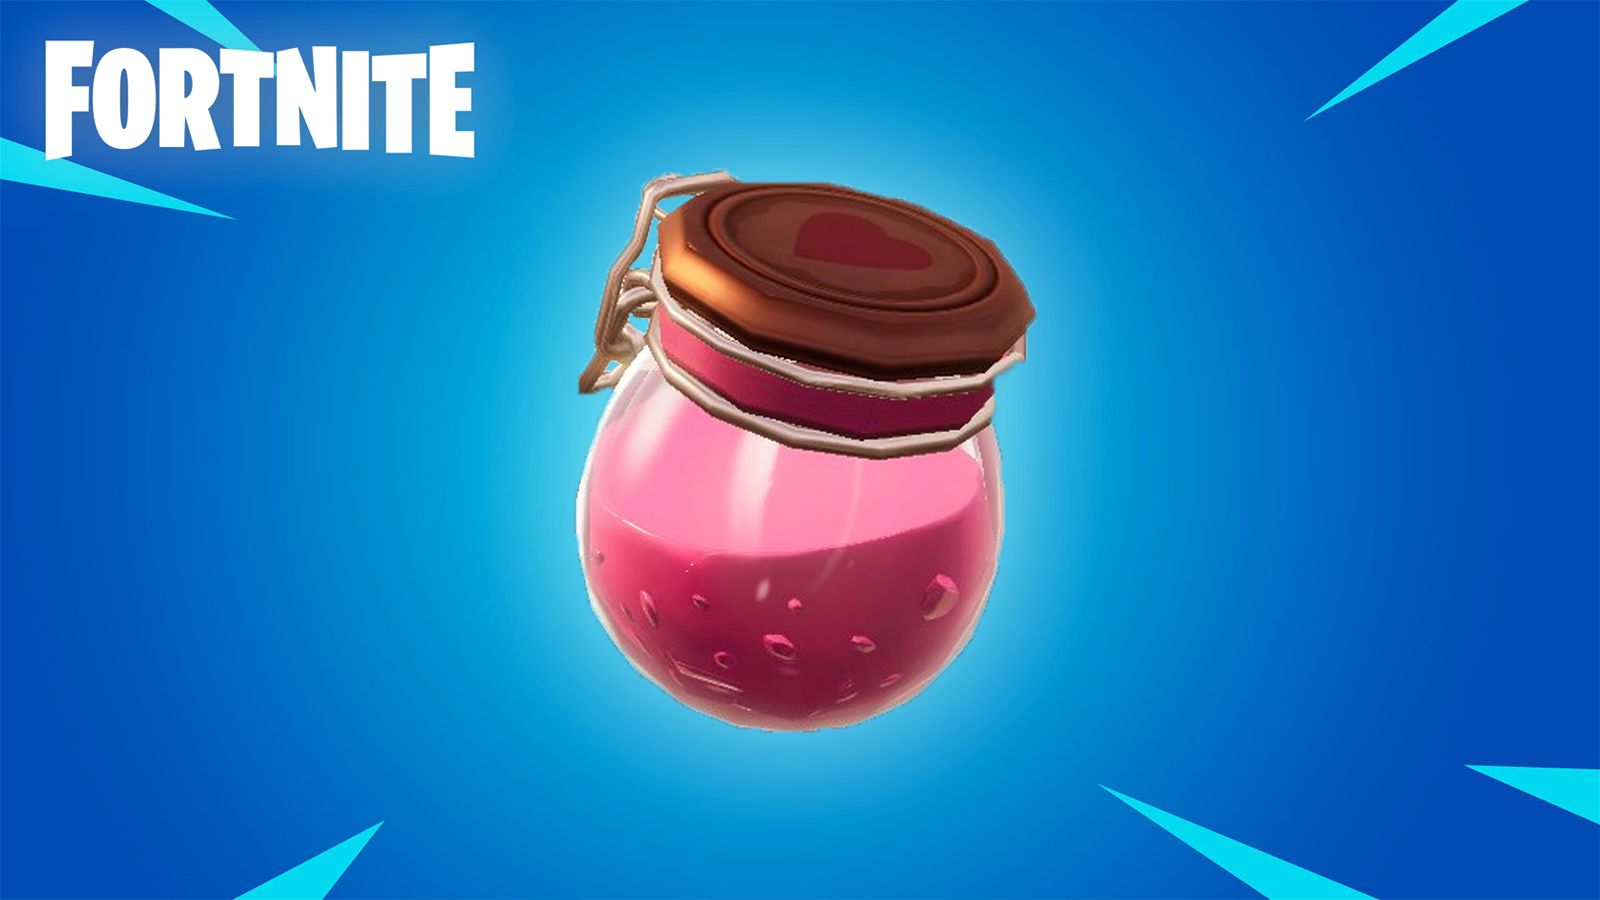 Poción de amor Fortnite